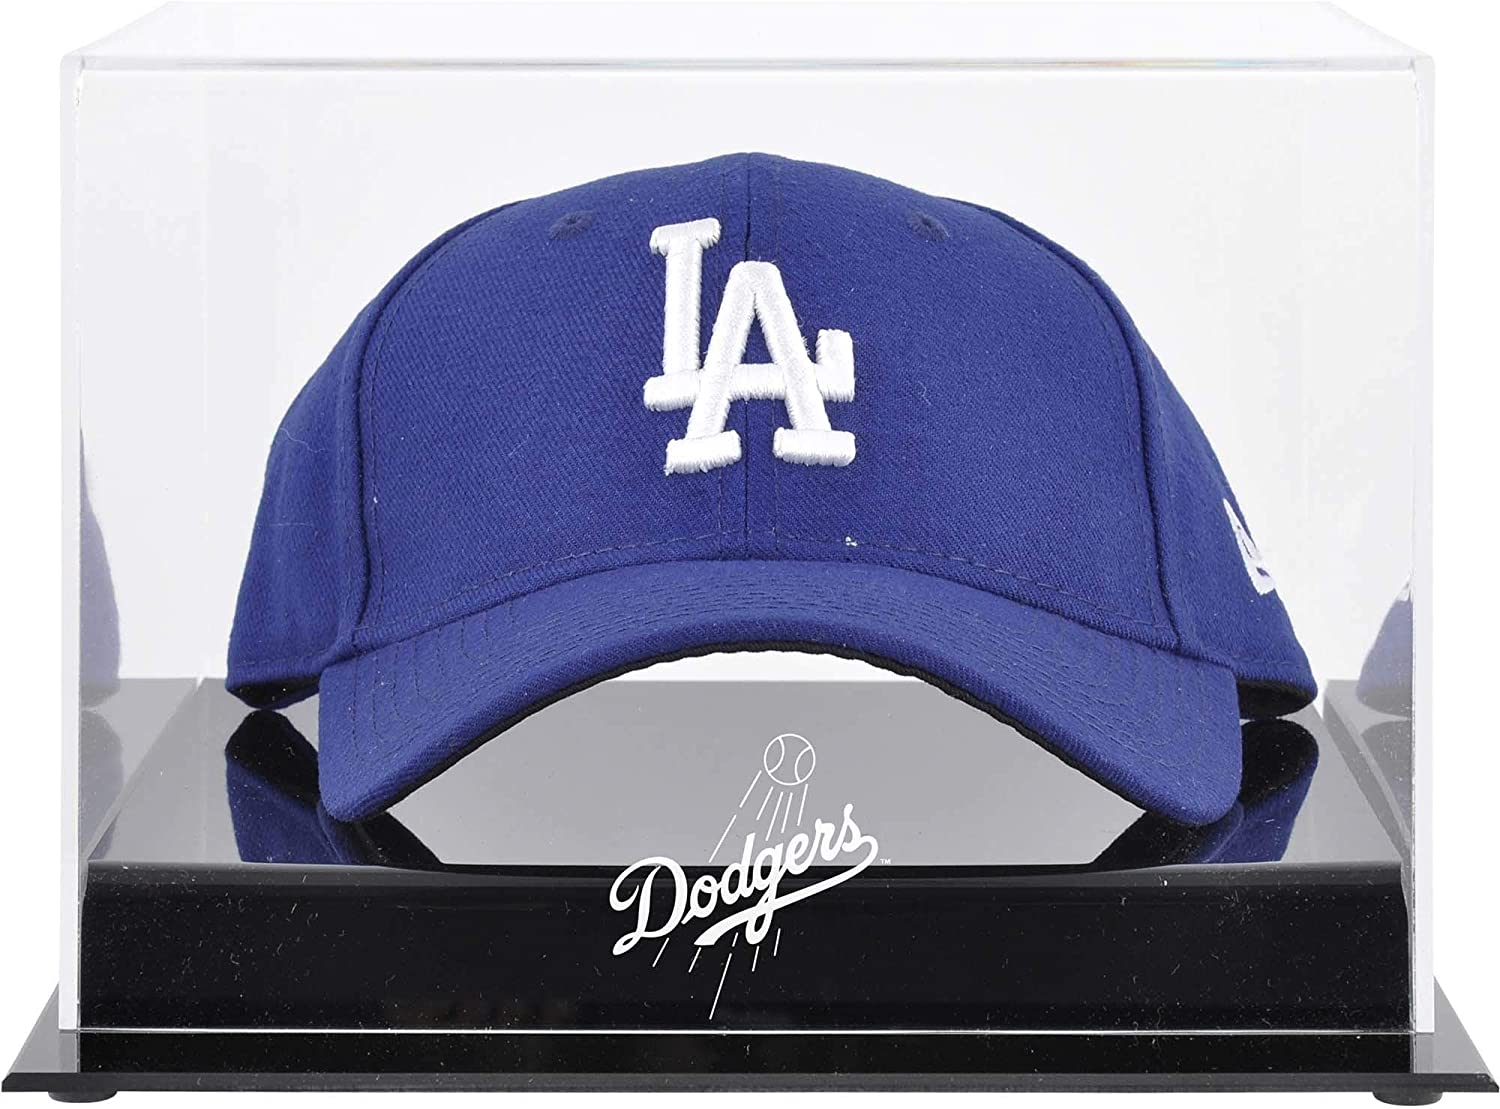 Los Angeles Dodgers Acrylic Cap Logo Display Case  Fanatics Authentic Certified  Baseball Hat Free Standing Display Cases